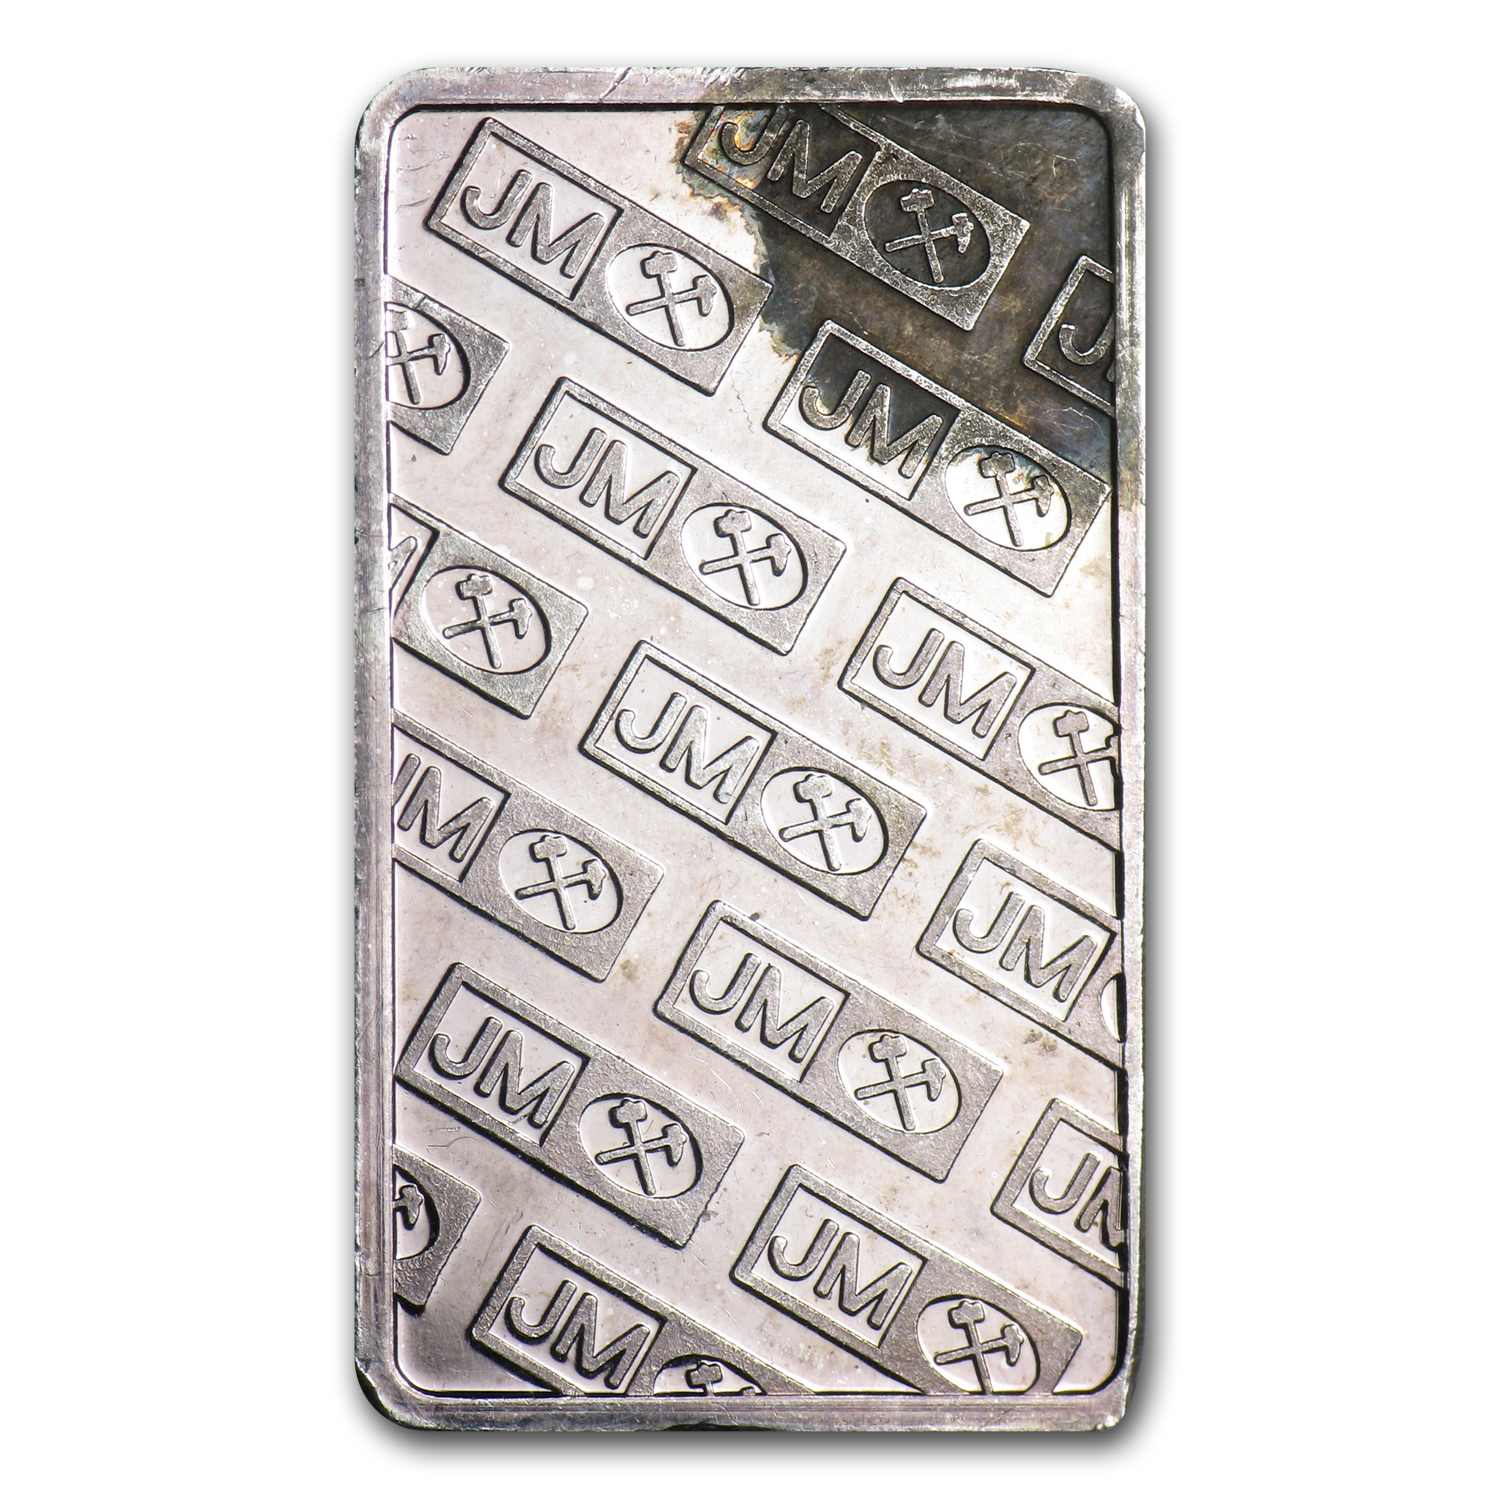 5 gram Silver Bars - Johnson Matthey (Scruffy)